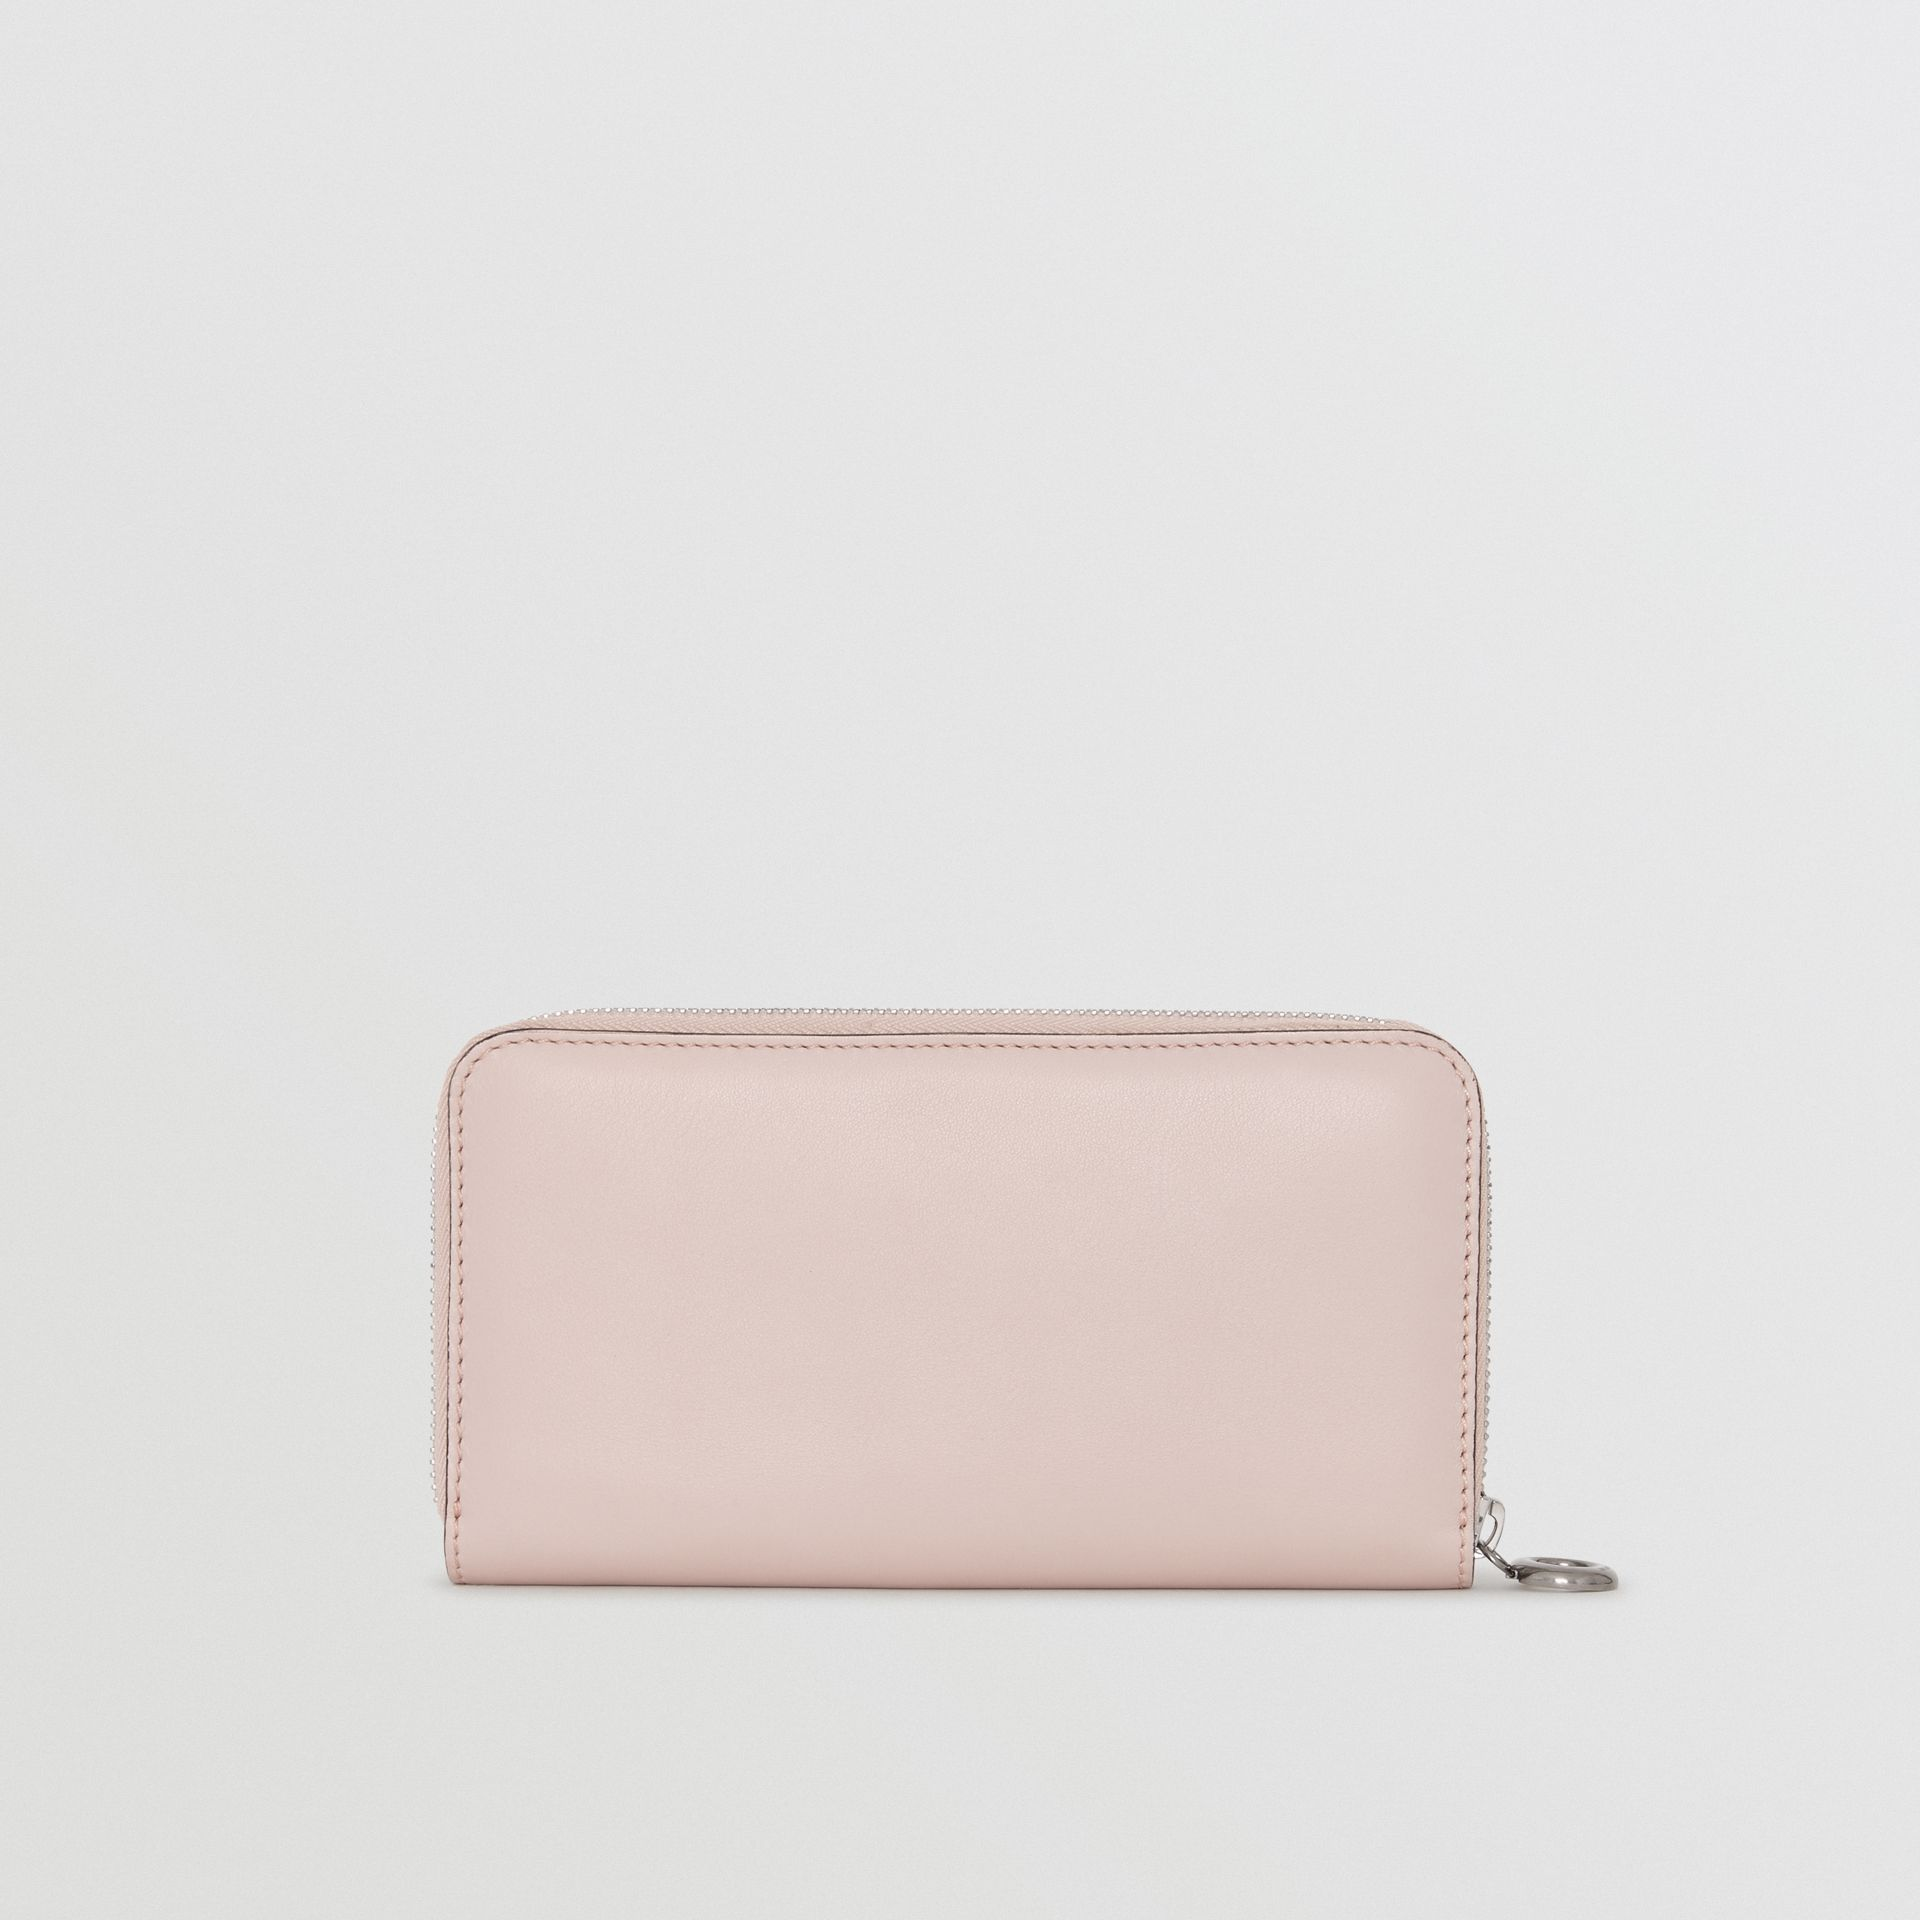 Embossed Crest Two-tone Leather Ziparound Wallet in Chalk Pink - Women | Burberry - gallery image 4